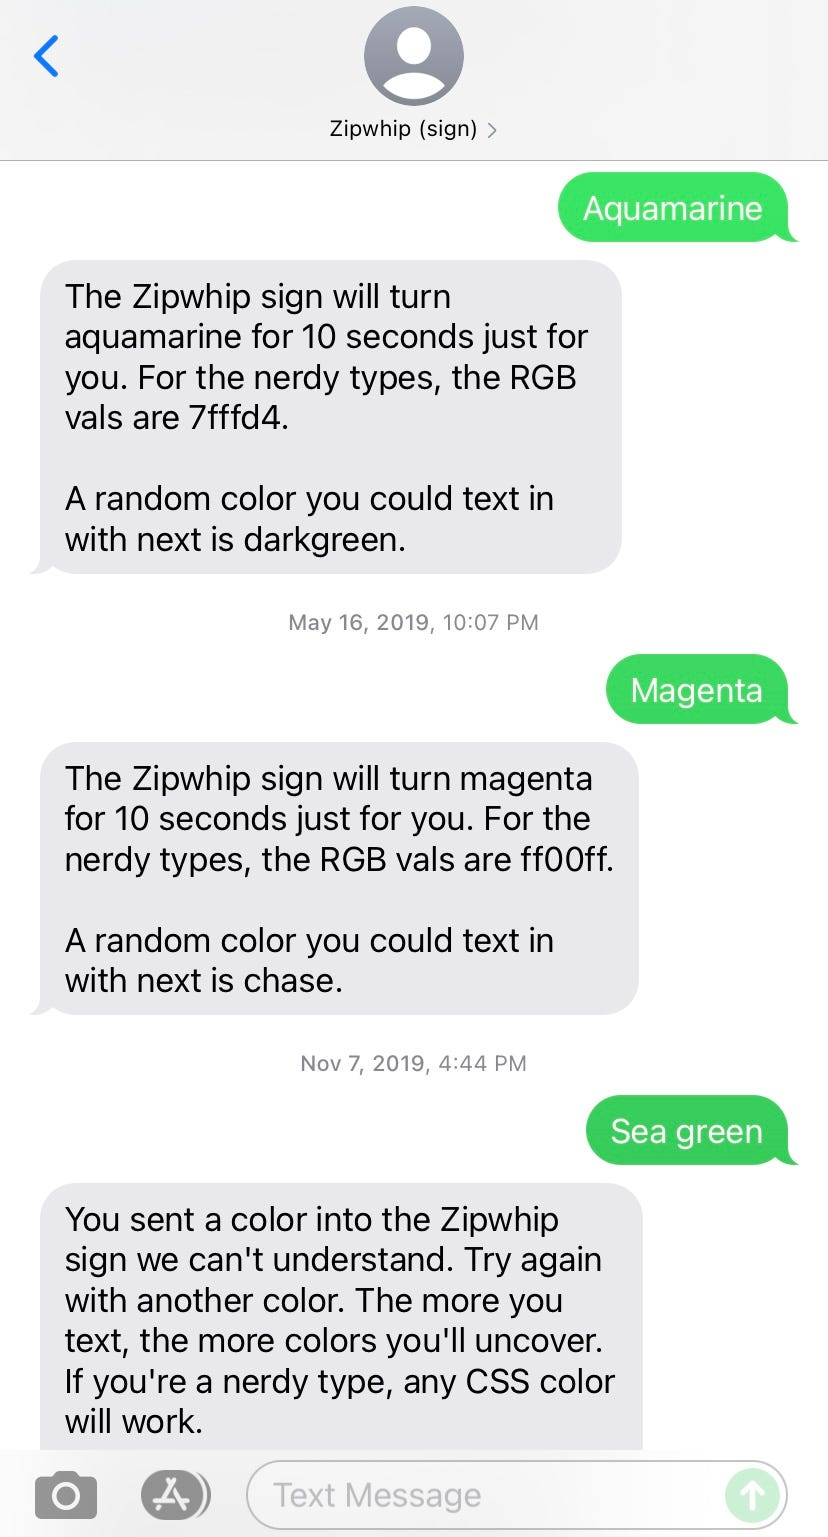 Texting the Zipwhip sign